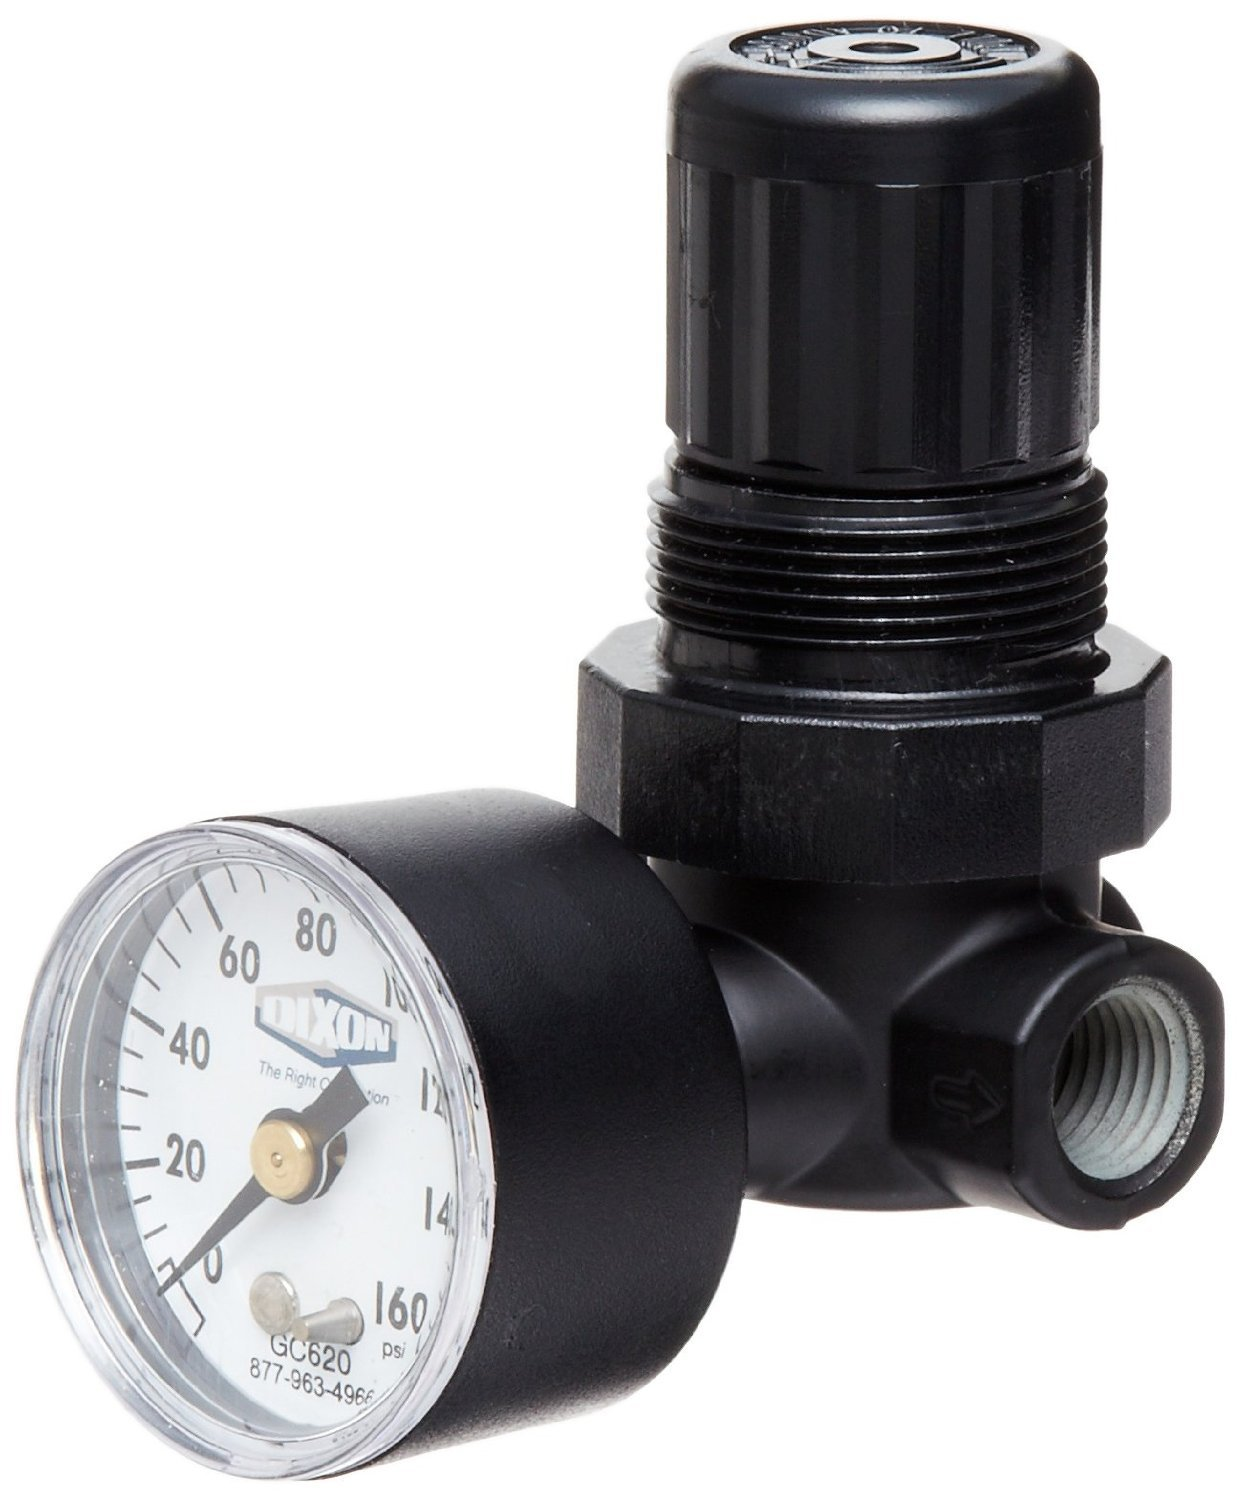 Dixon R07-200RG Norgren Series Miniature Regulator with Gauge, 22 SCFM, 1/4'' Port Size, 5-100 PSI by Dixon Valve & Coupling